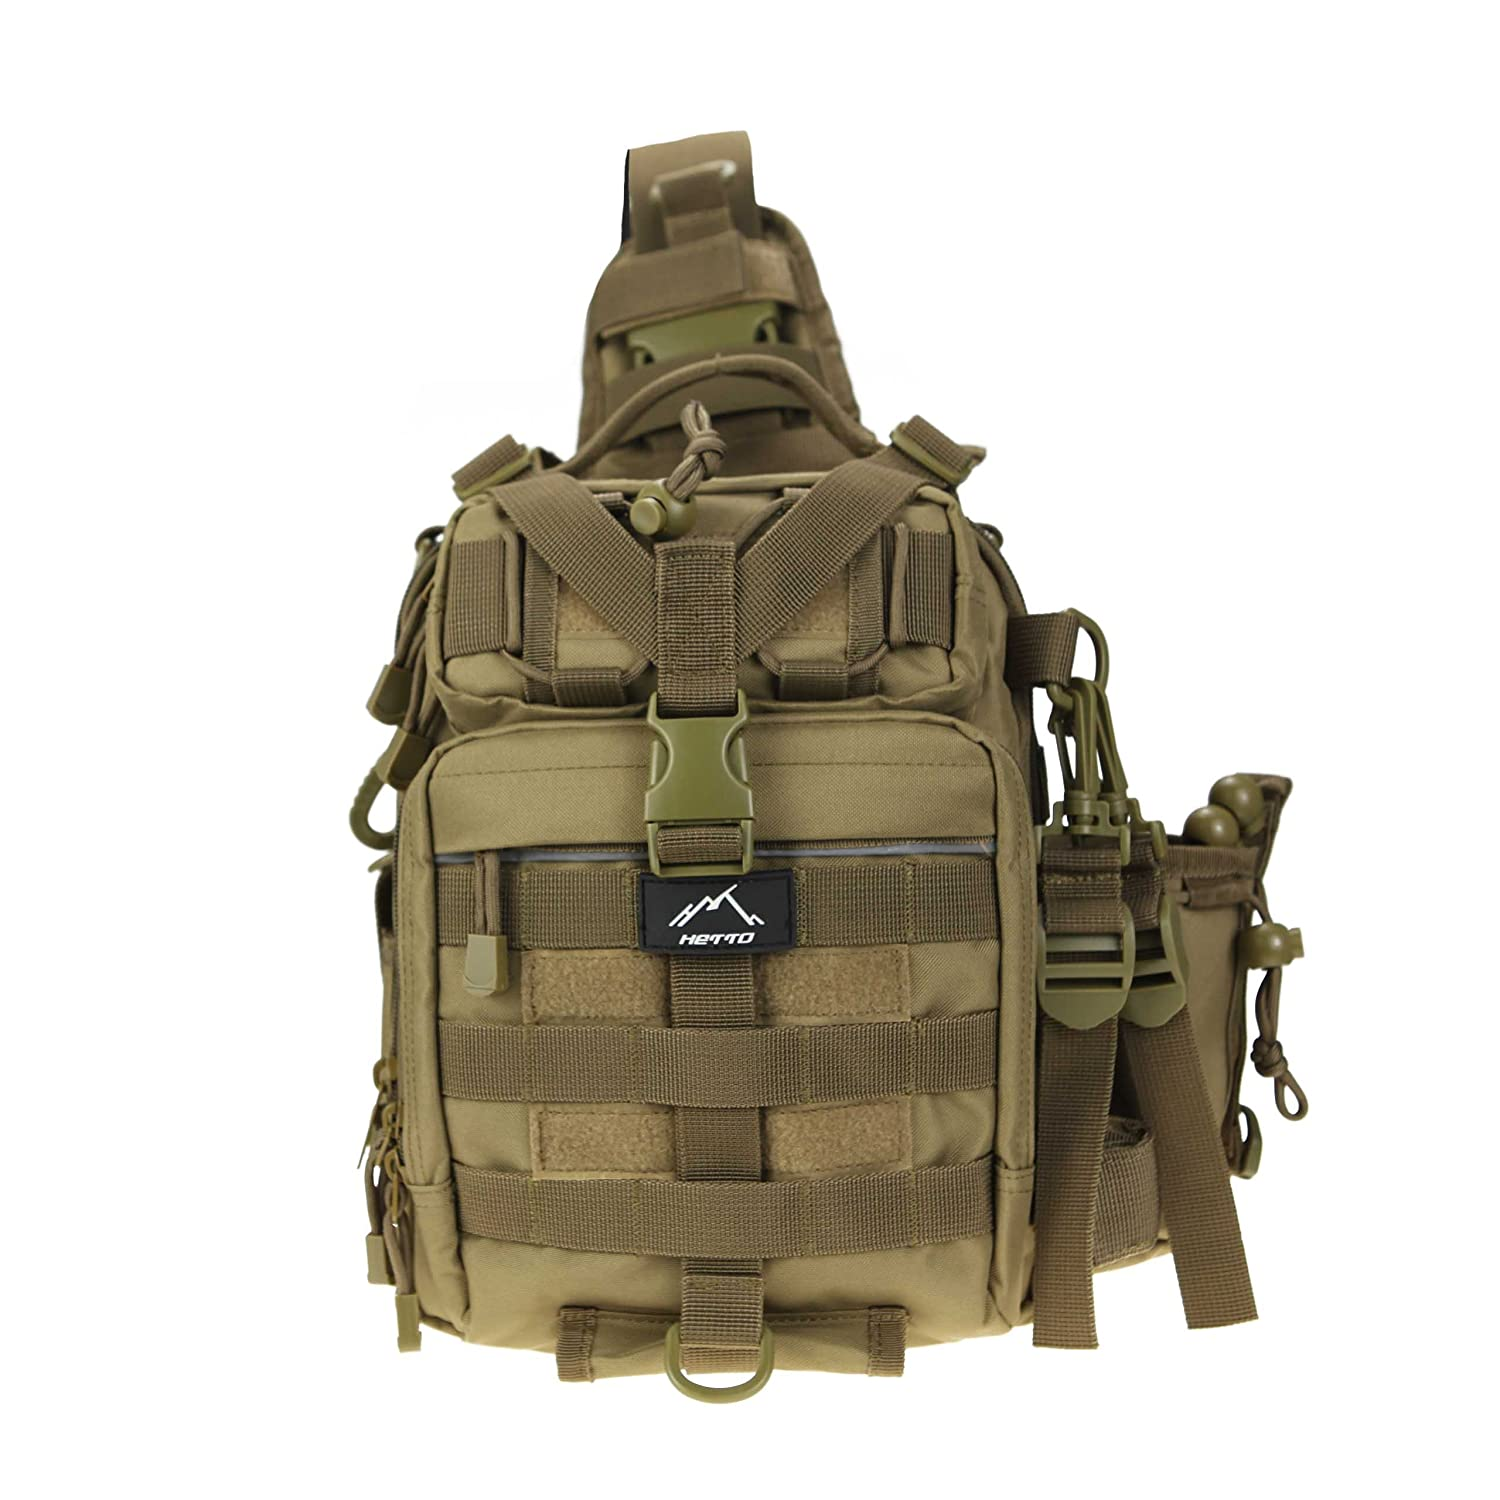 HETTO Fly Fishing Sling Shoulder Bag with Handy Pocket Tactical Chest Backpack Molle Shoulder Waterproof Rucksack Single Strap Nylon 1000D Military Backpack Light Army Lure Bag Lightweight for Men